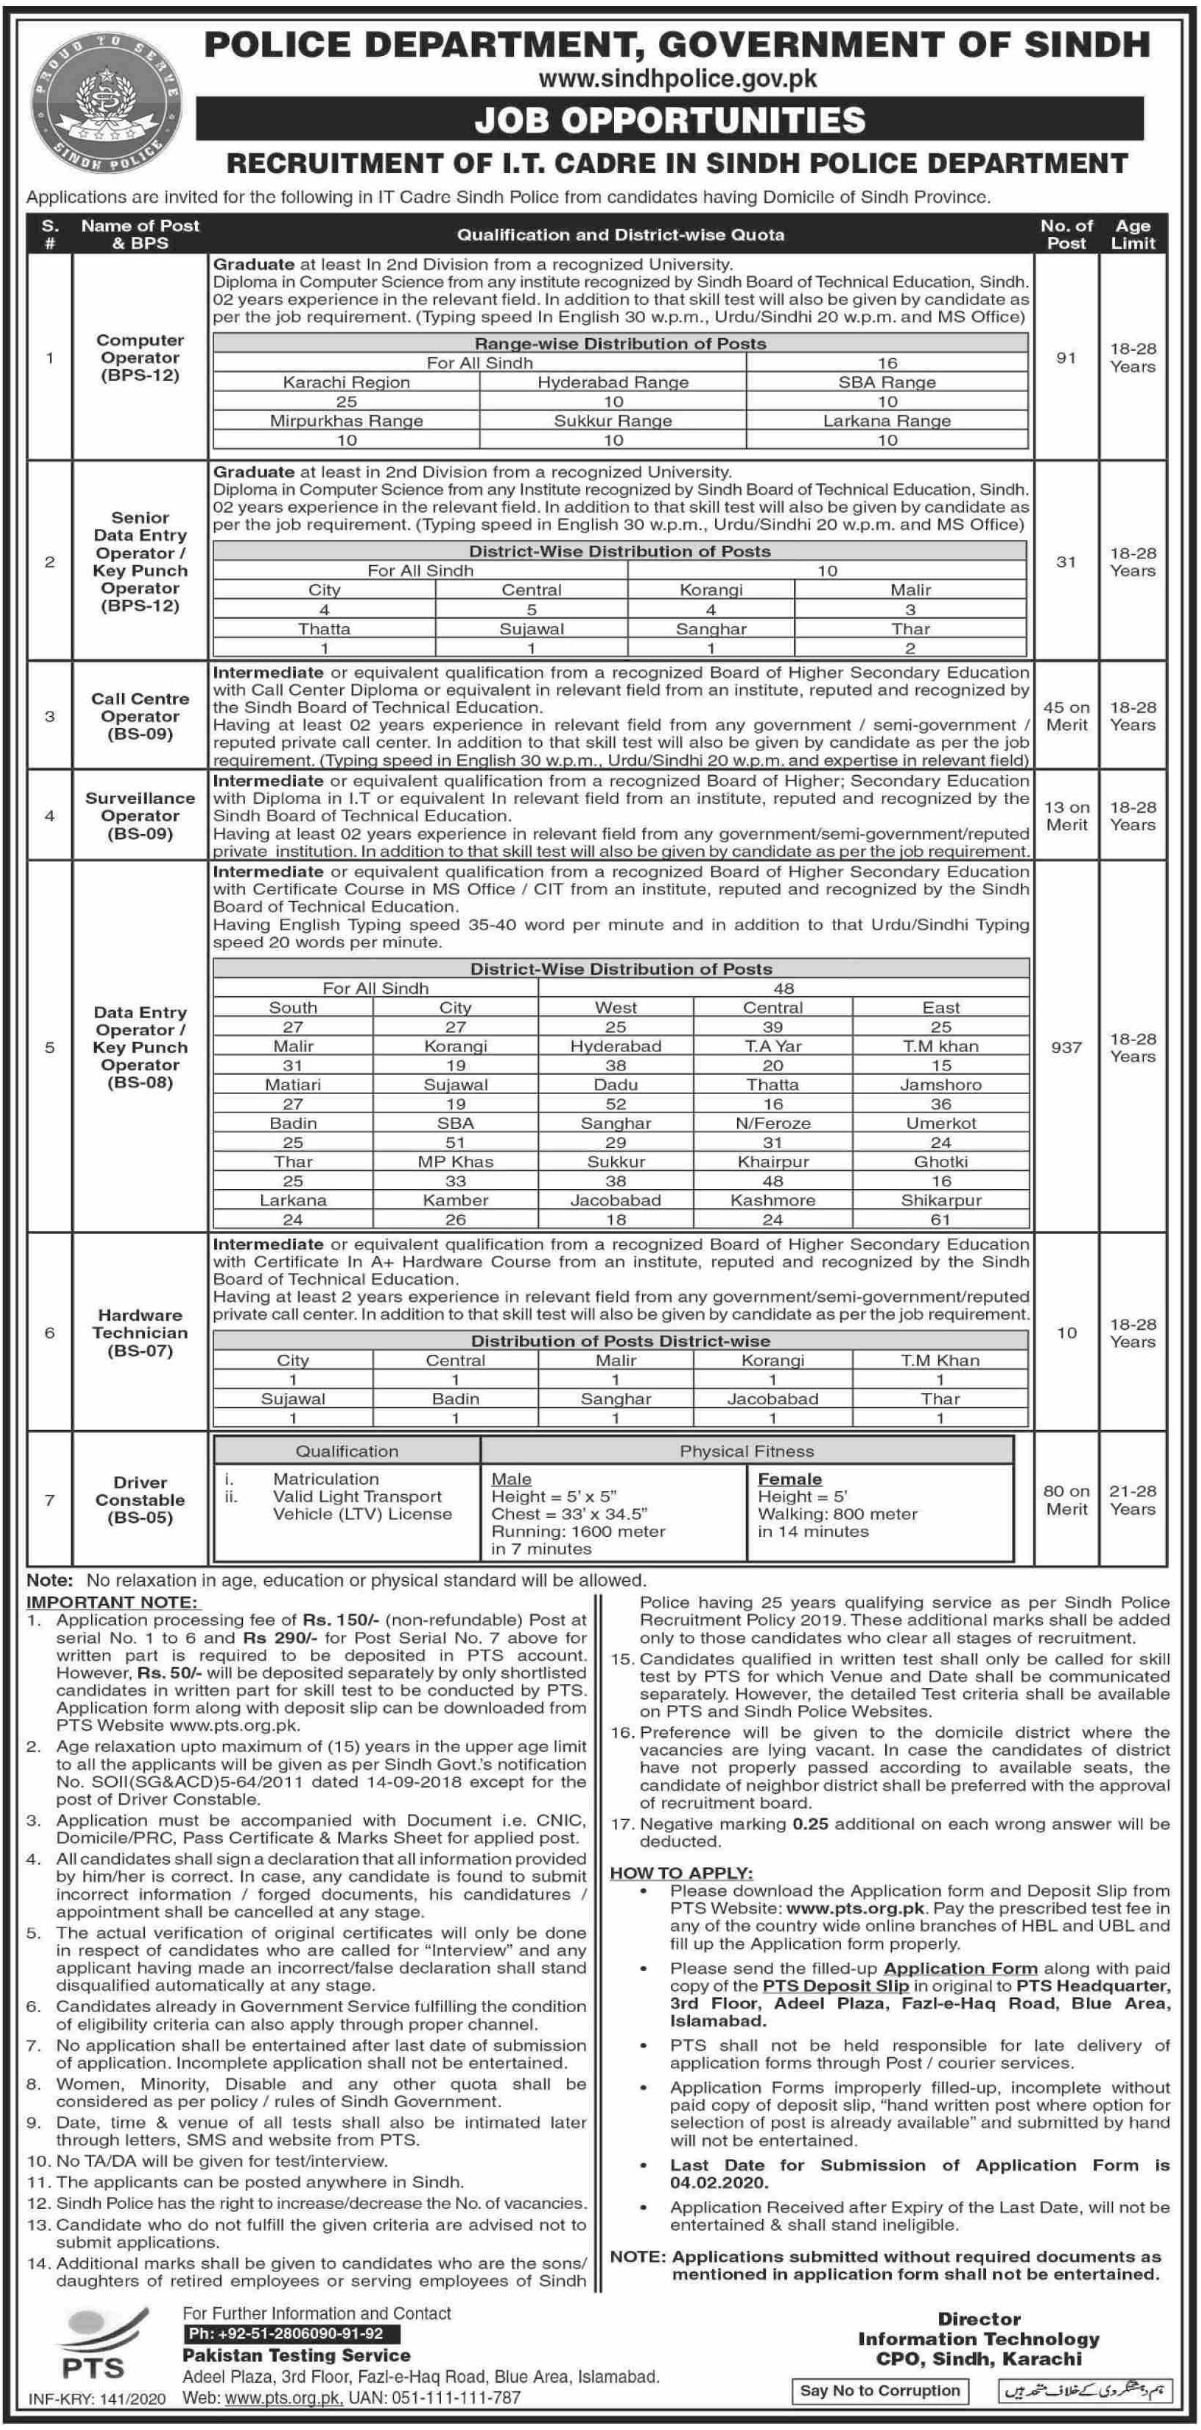 Sindh Police Department Jobs 2020 Apply via PTS